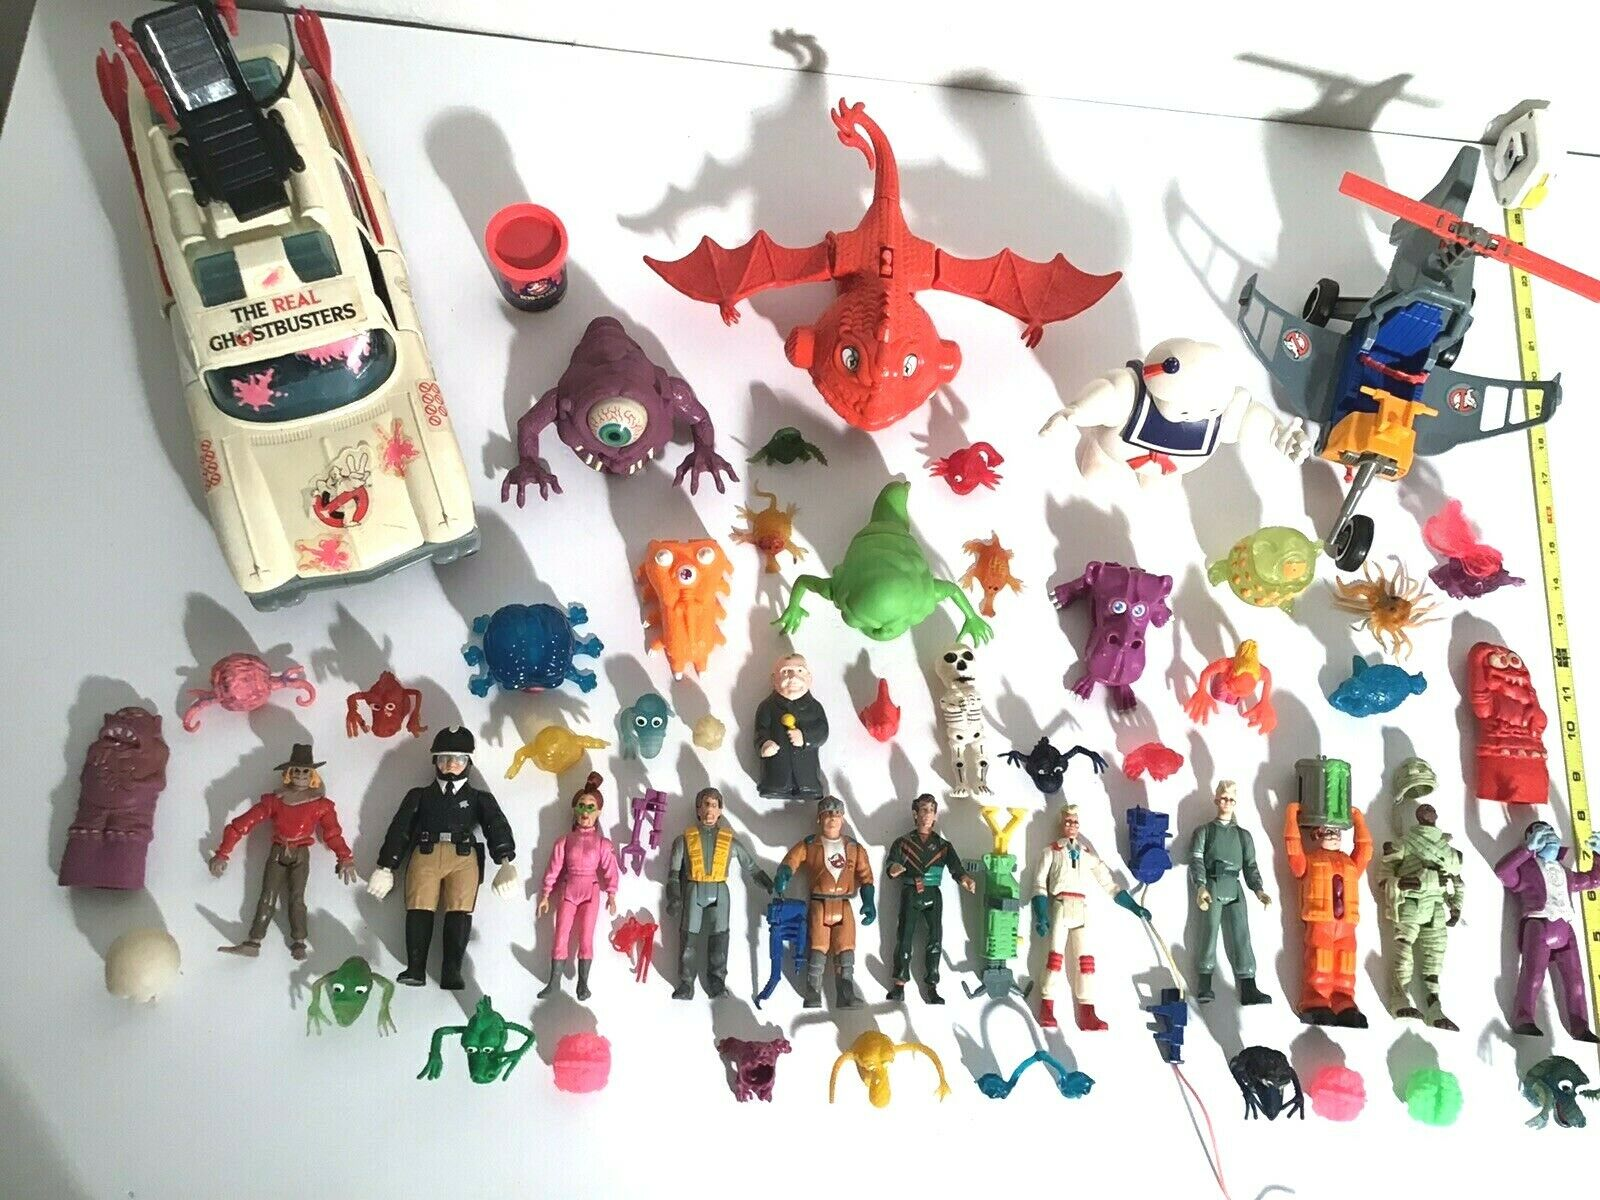 HUGE VINTAGE LOT OF 57 REAL GHOSTBUSTERS FIGURES, VEHICLES, GHOSTS&WEAPONS GHOSTS&WEAPONS GHOSTS&WEAPONS 1980s a3f78c